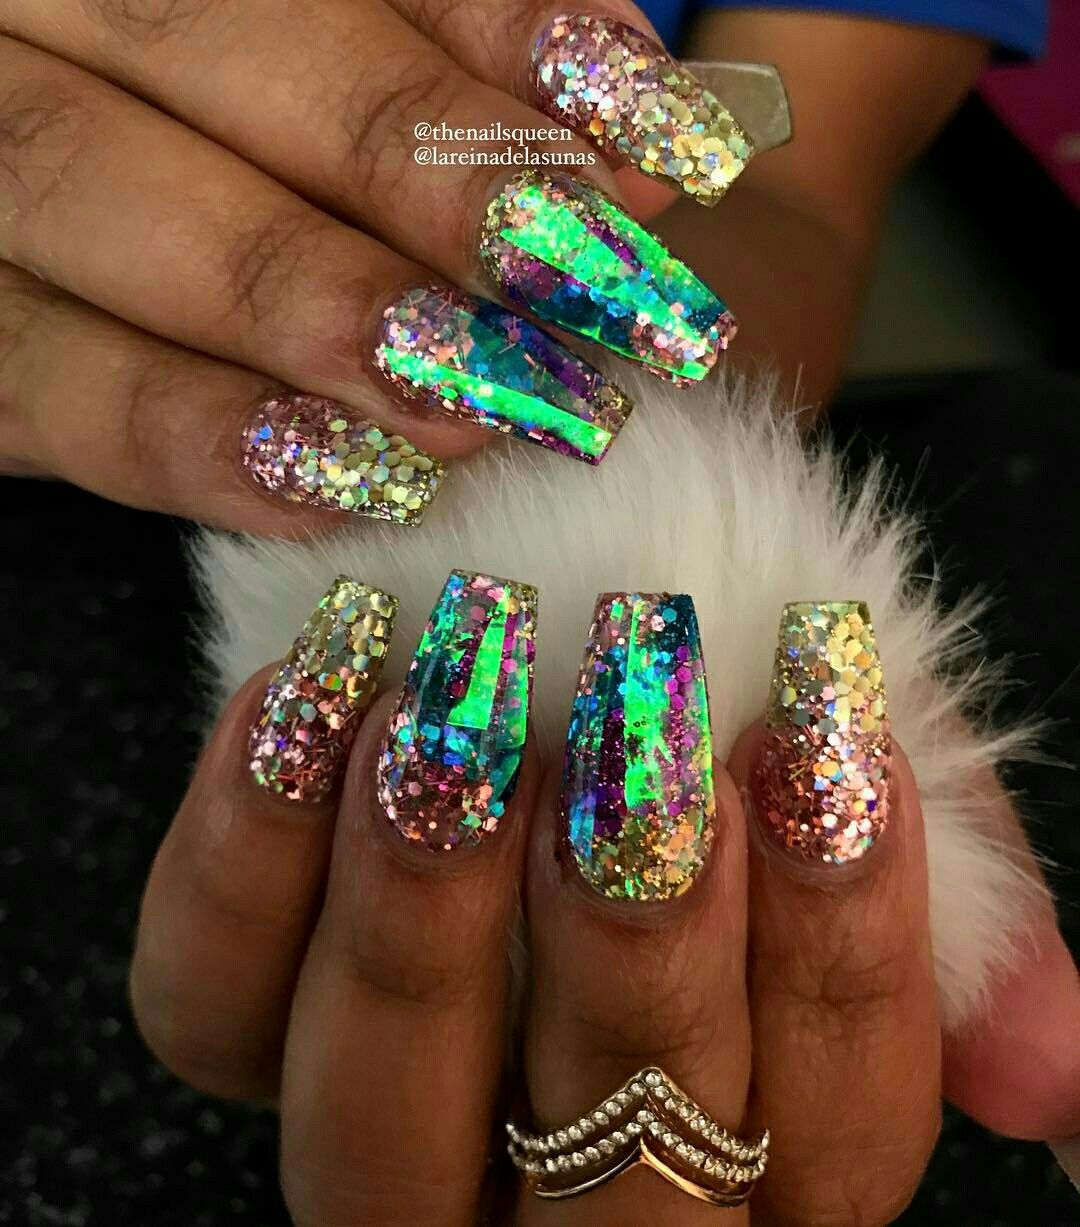 Glowing Irredesicient Nail Art/Design Ideas | Nails | Pinterest ...